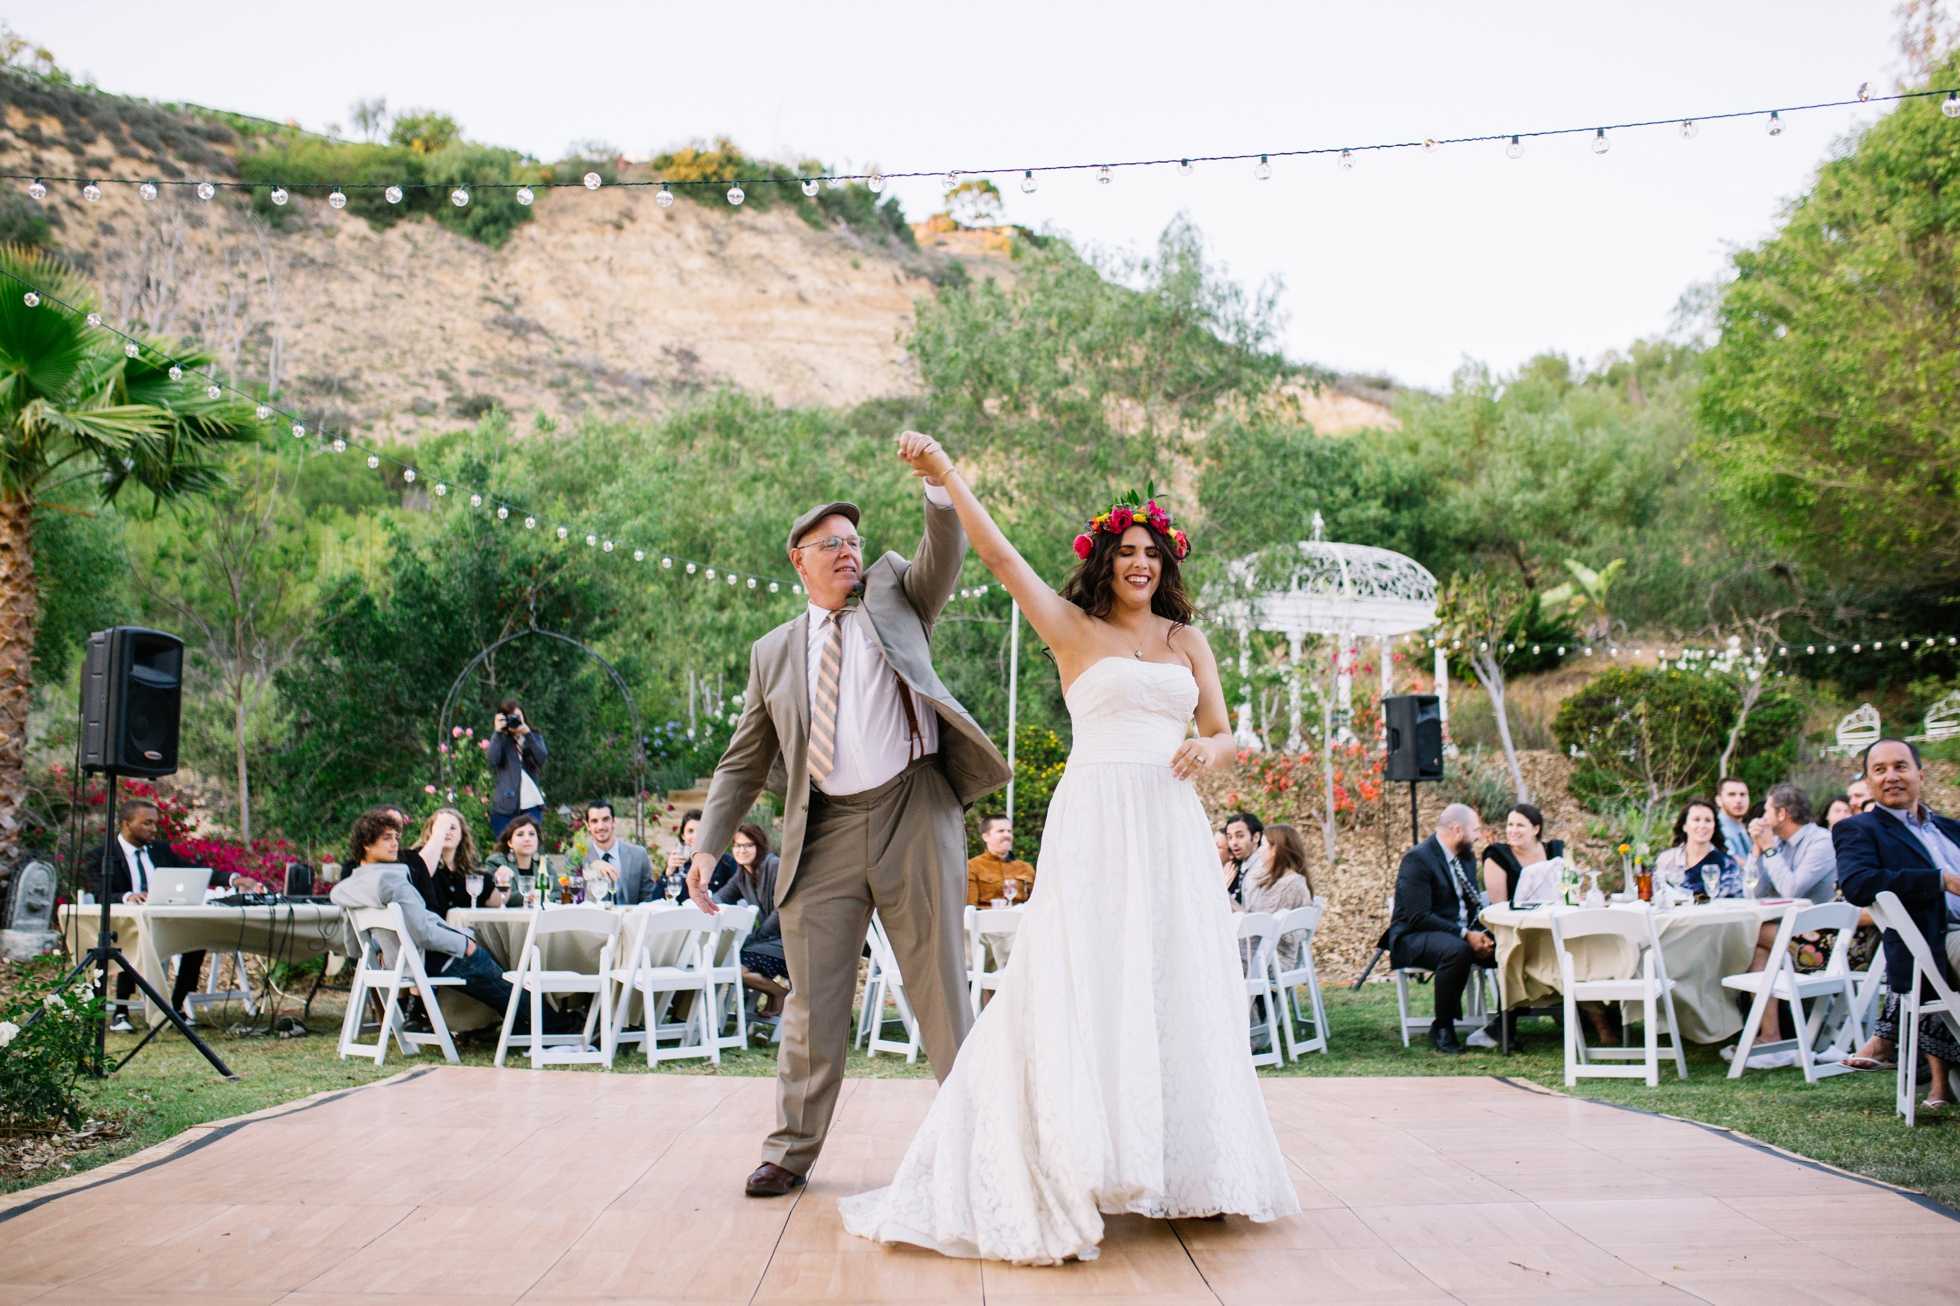 Palos Verdes Southern California Destination Wedding | brittneyraine.com 0063